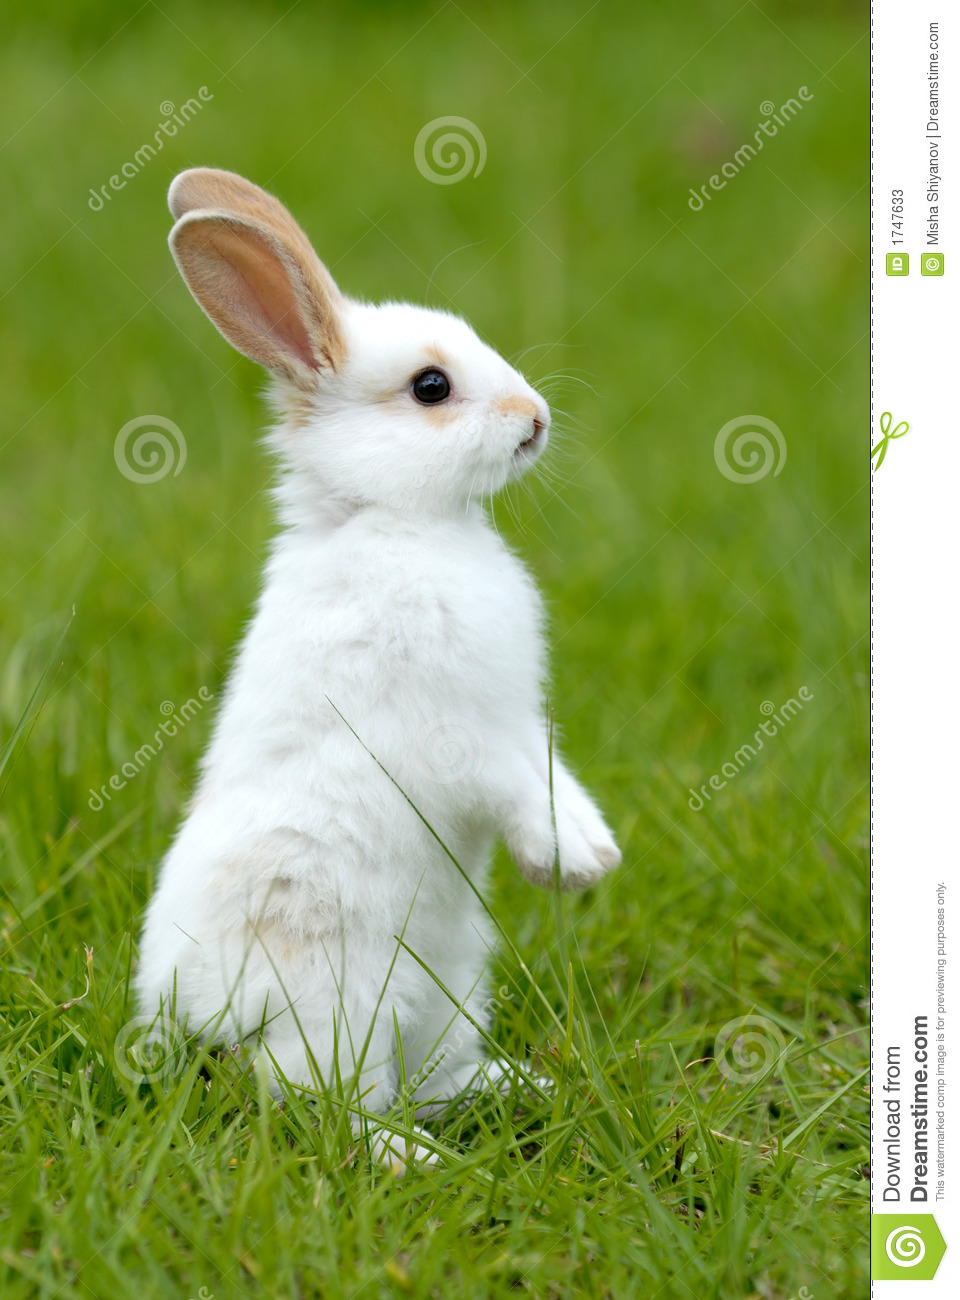 Cute Baby Rabbit Wallpapers White Rabbit On The Grass Stock Image Image Of Green